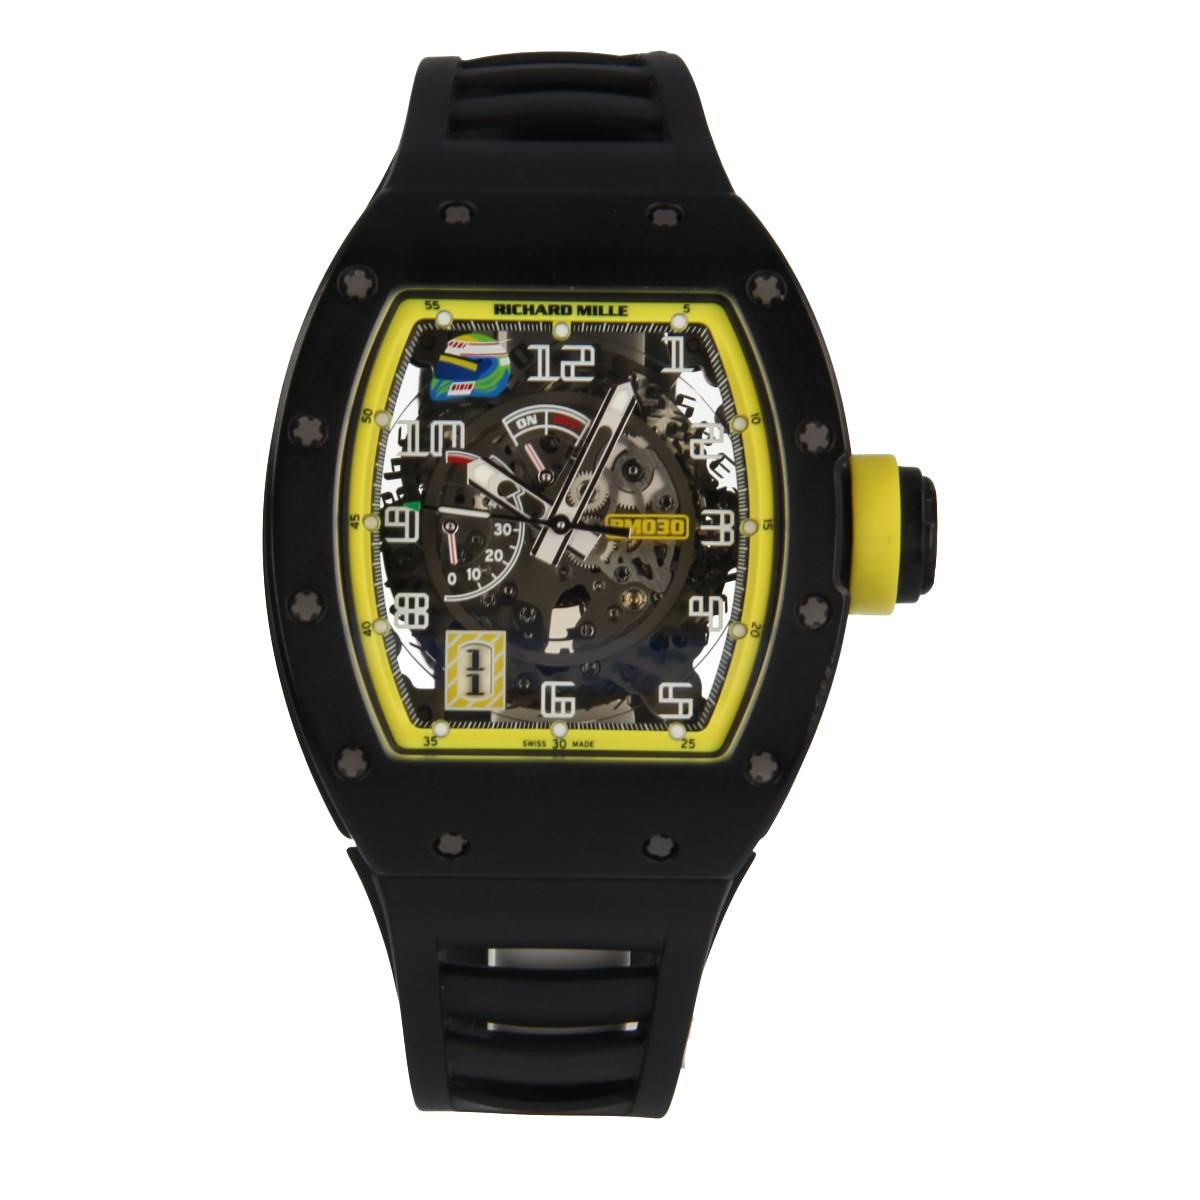 Richard Mille Rm 030 Grand Prix Brazil Limited Edition 30 Pcs | Buy pre-owned Richard Mille watch